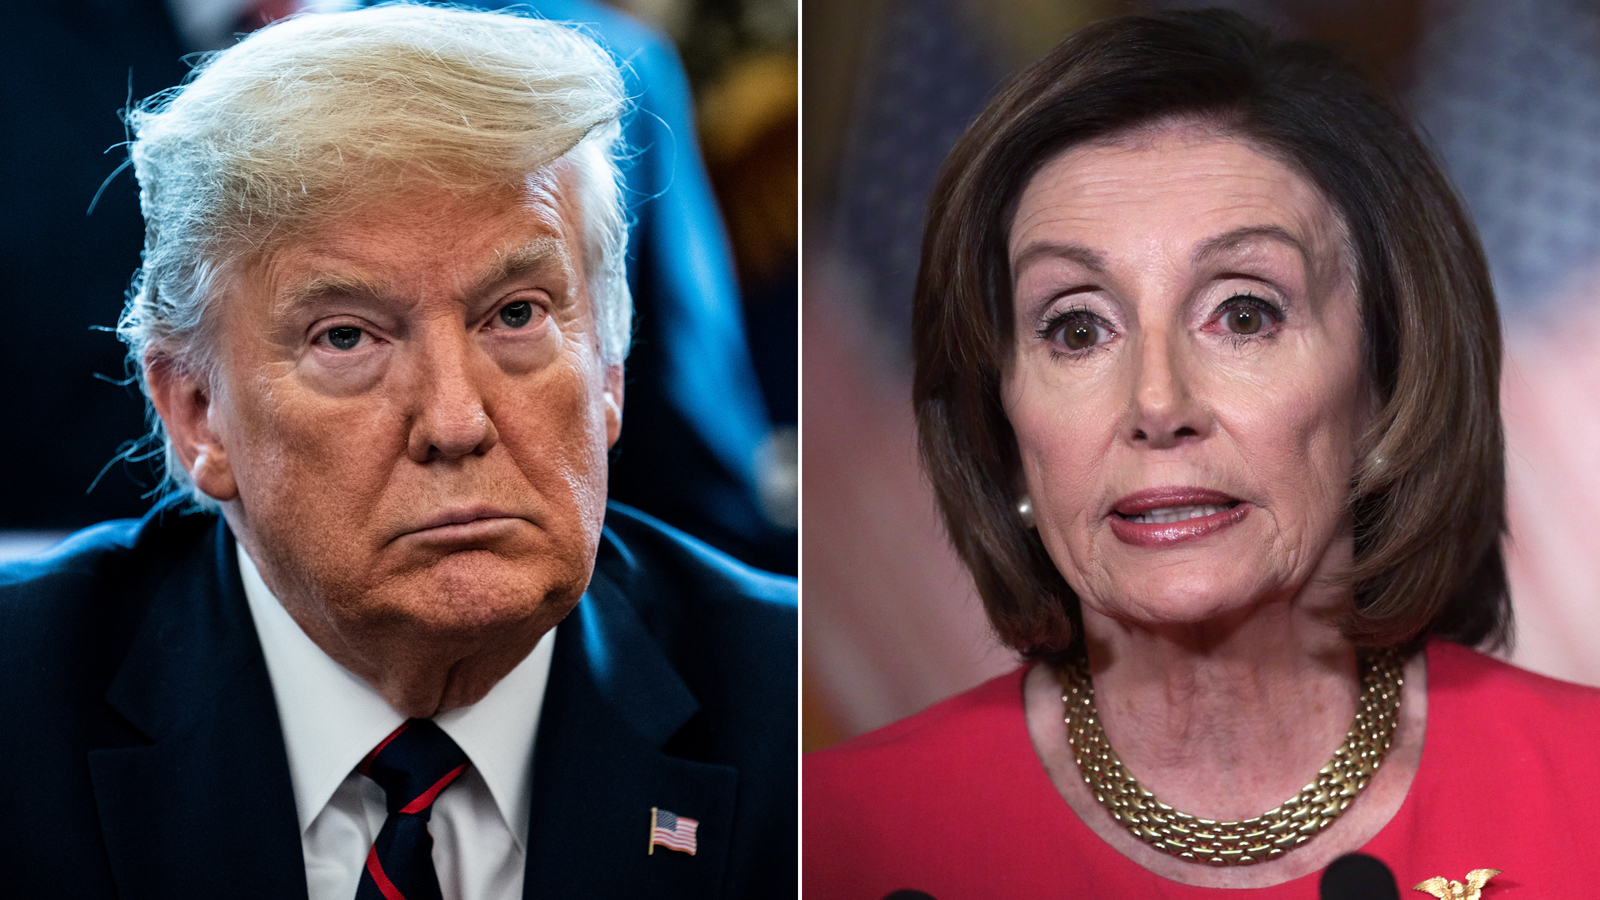 Trump and Pelosi haven't spoken in nearly 10 months